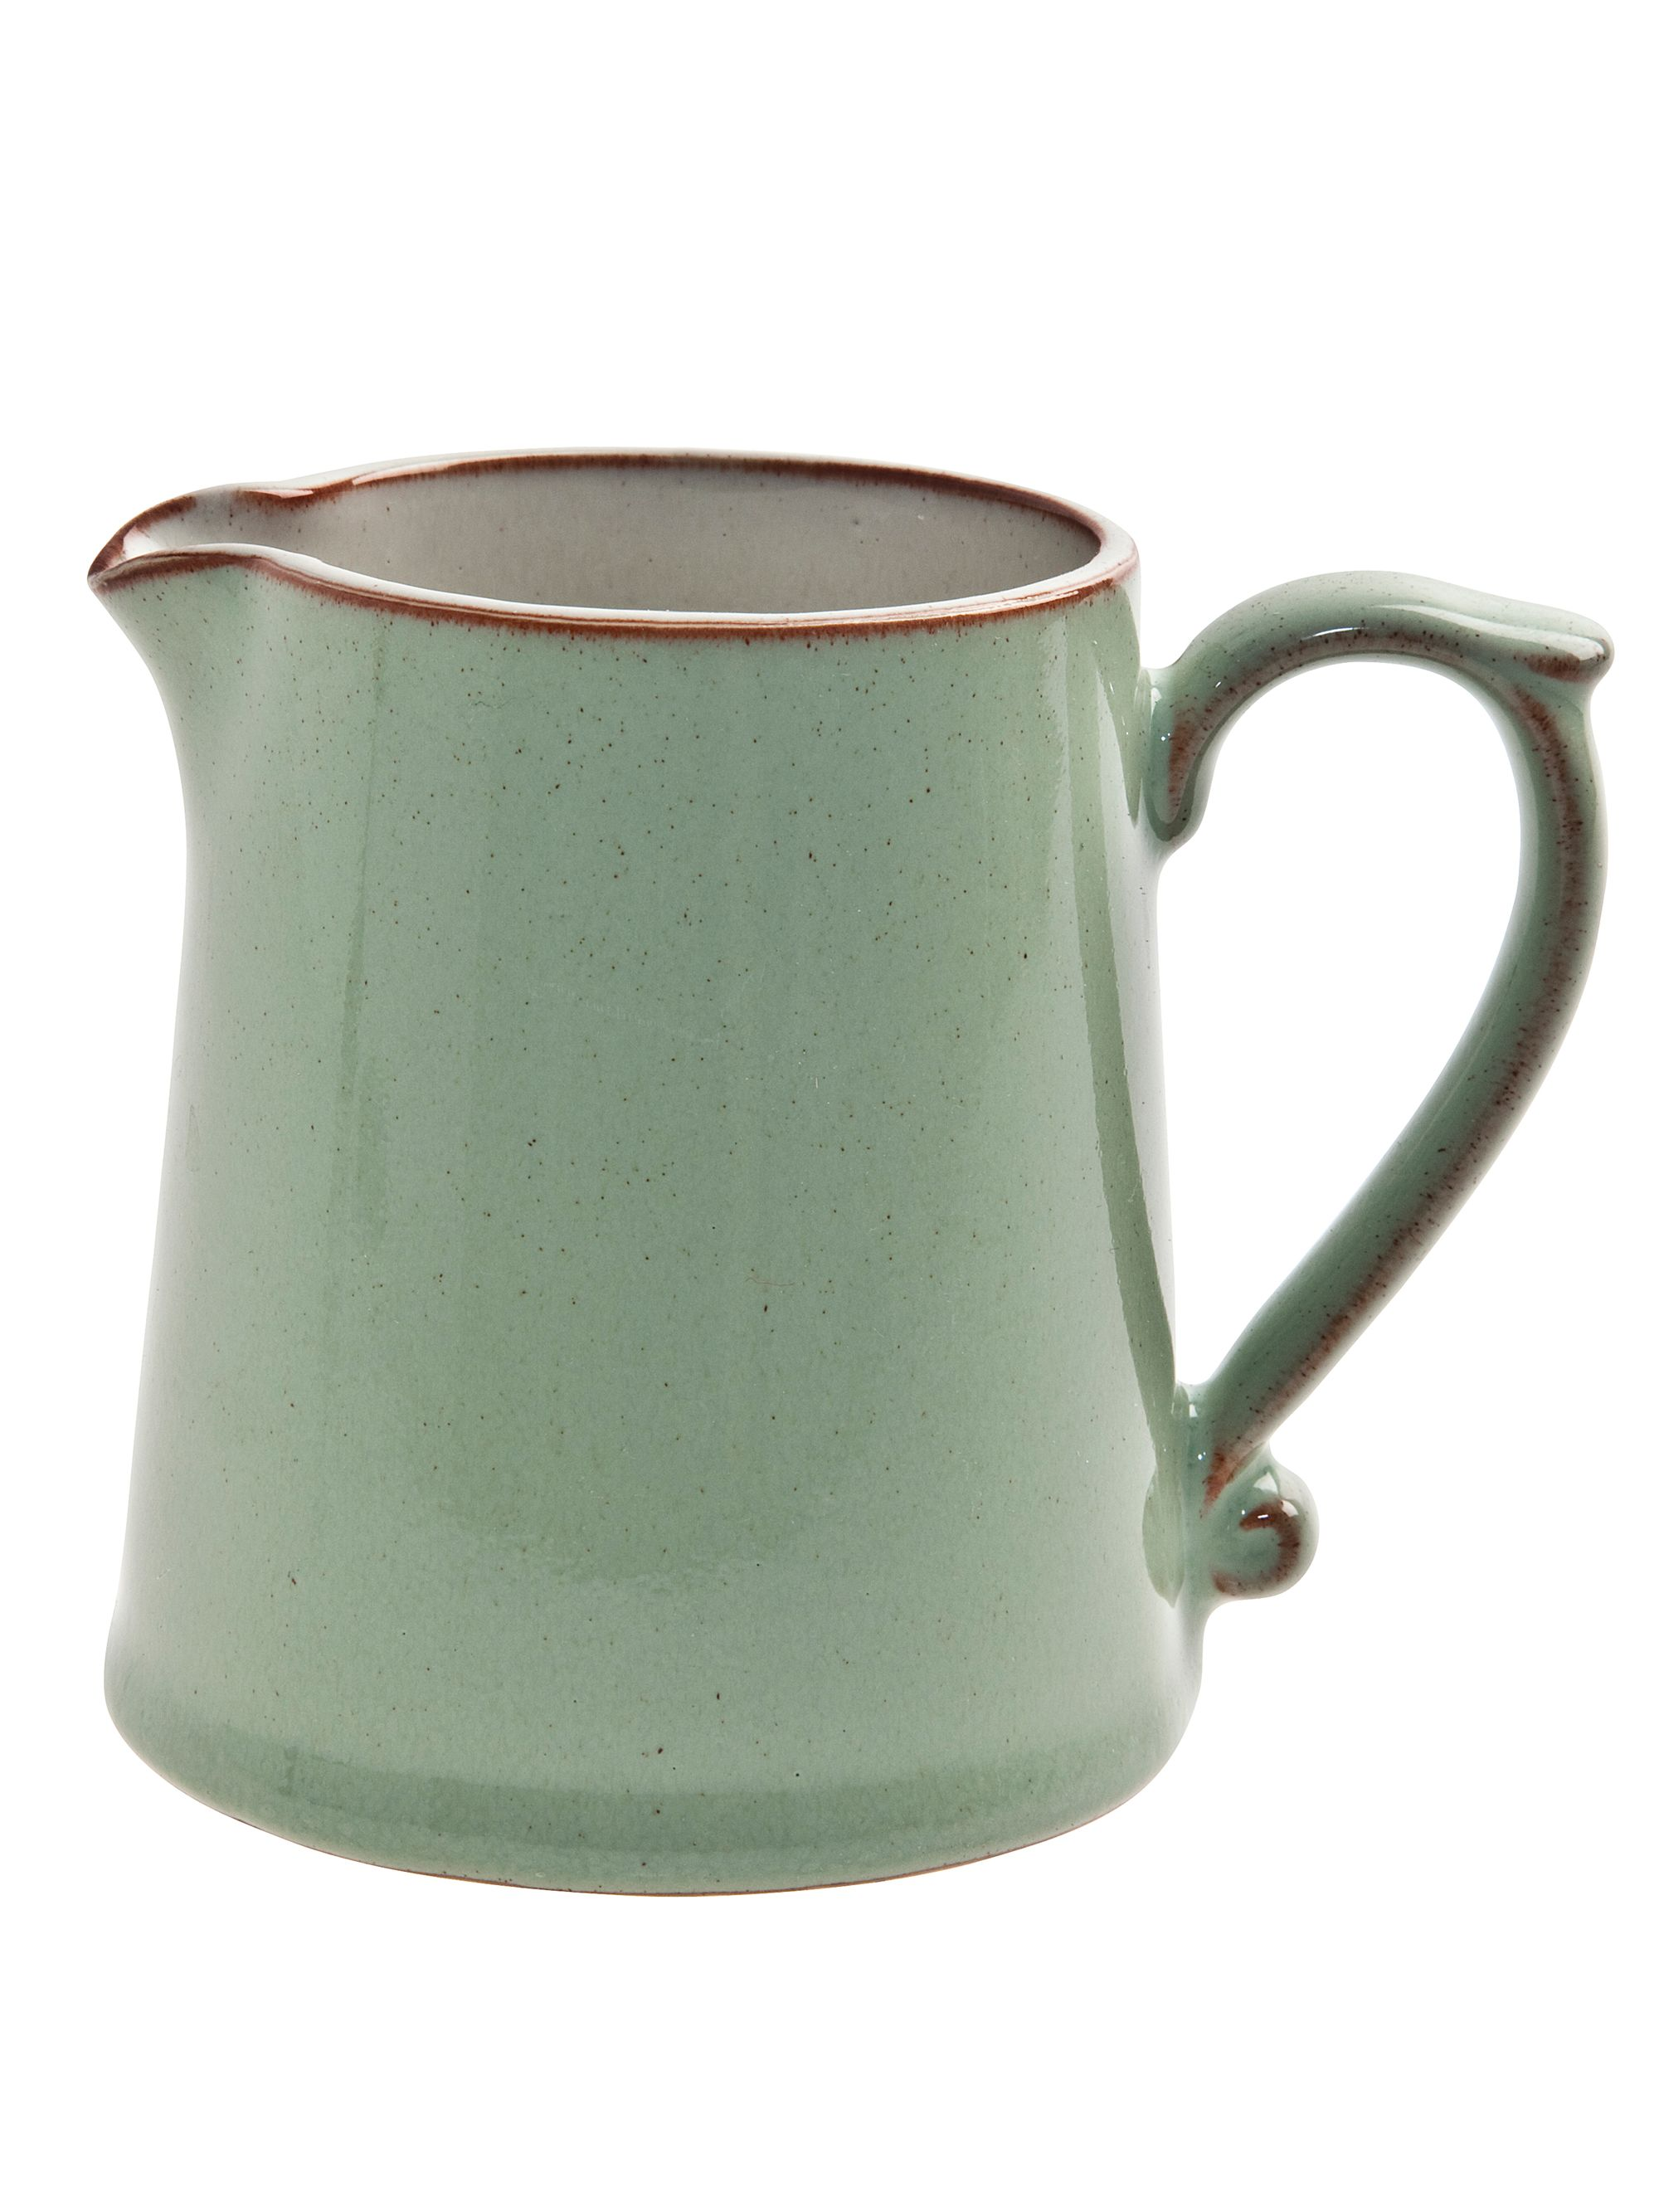 Heritage orchard small jug